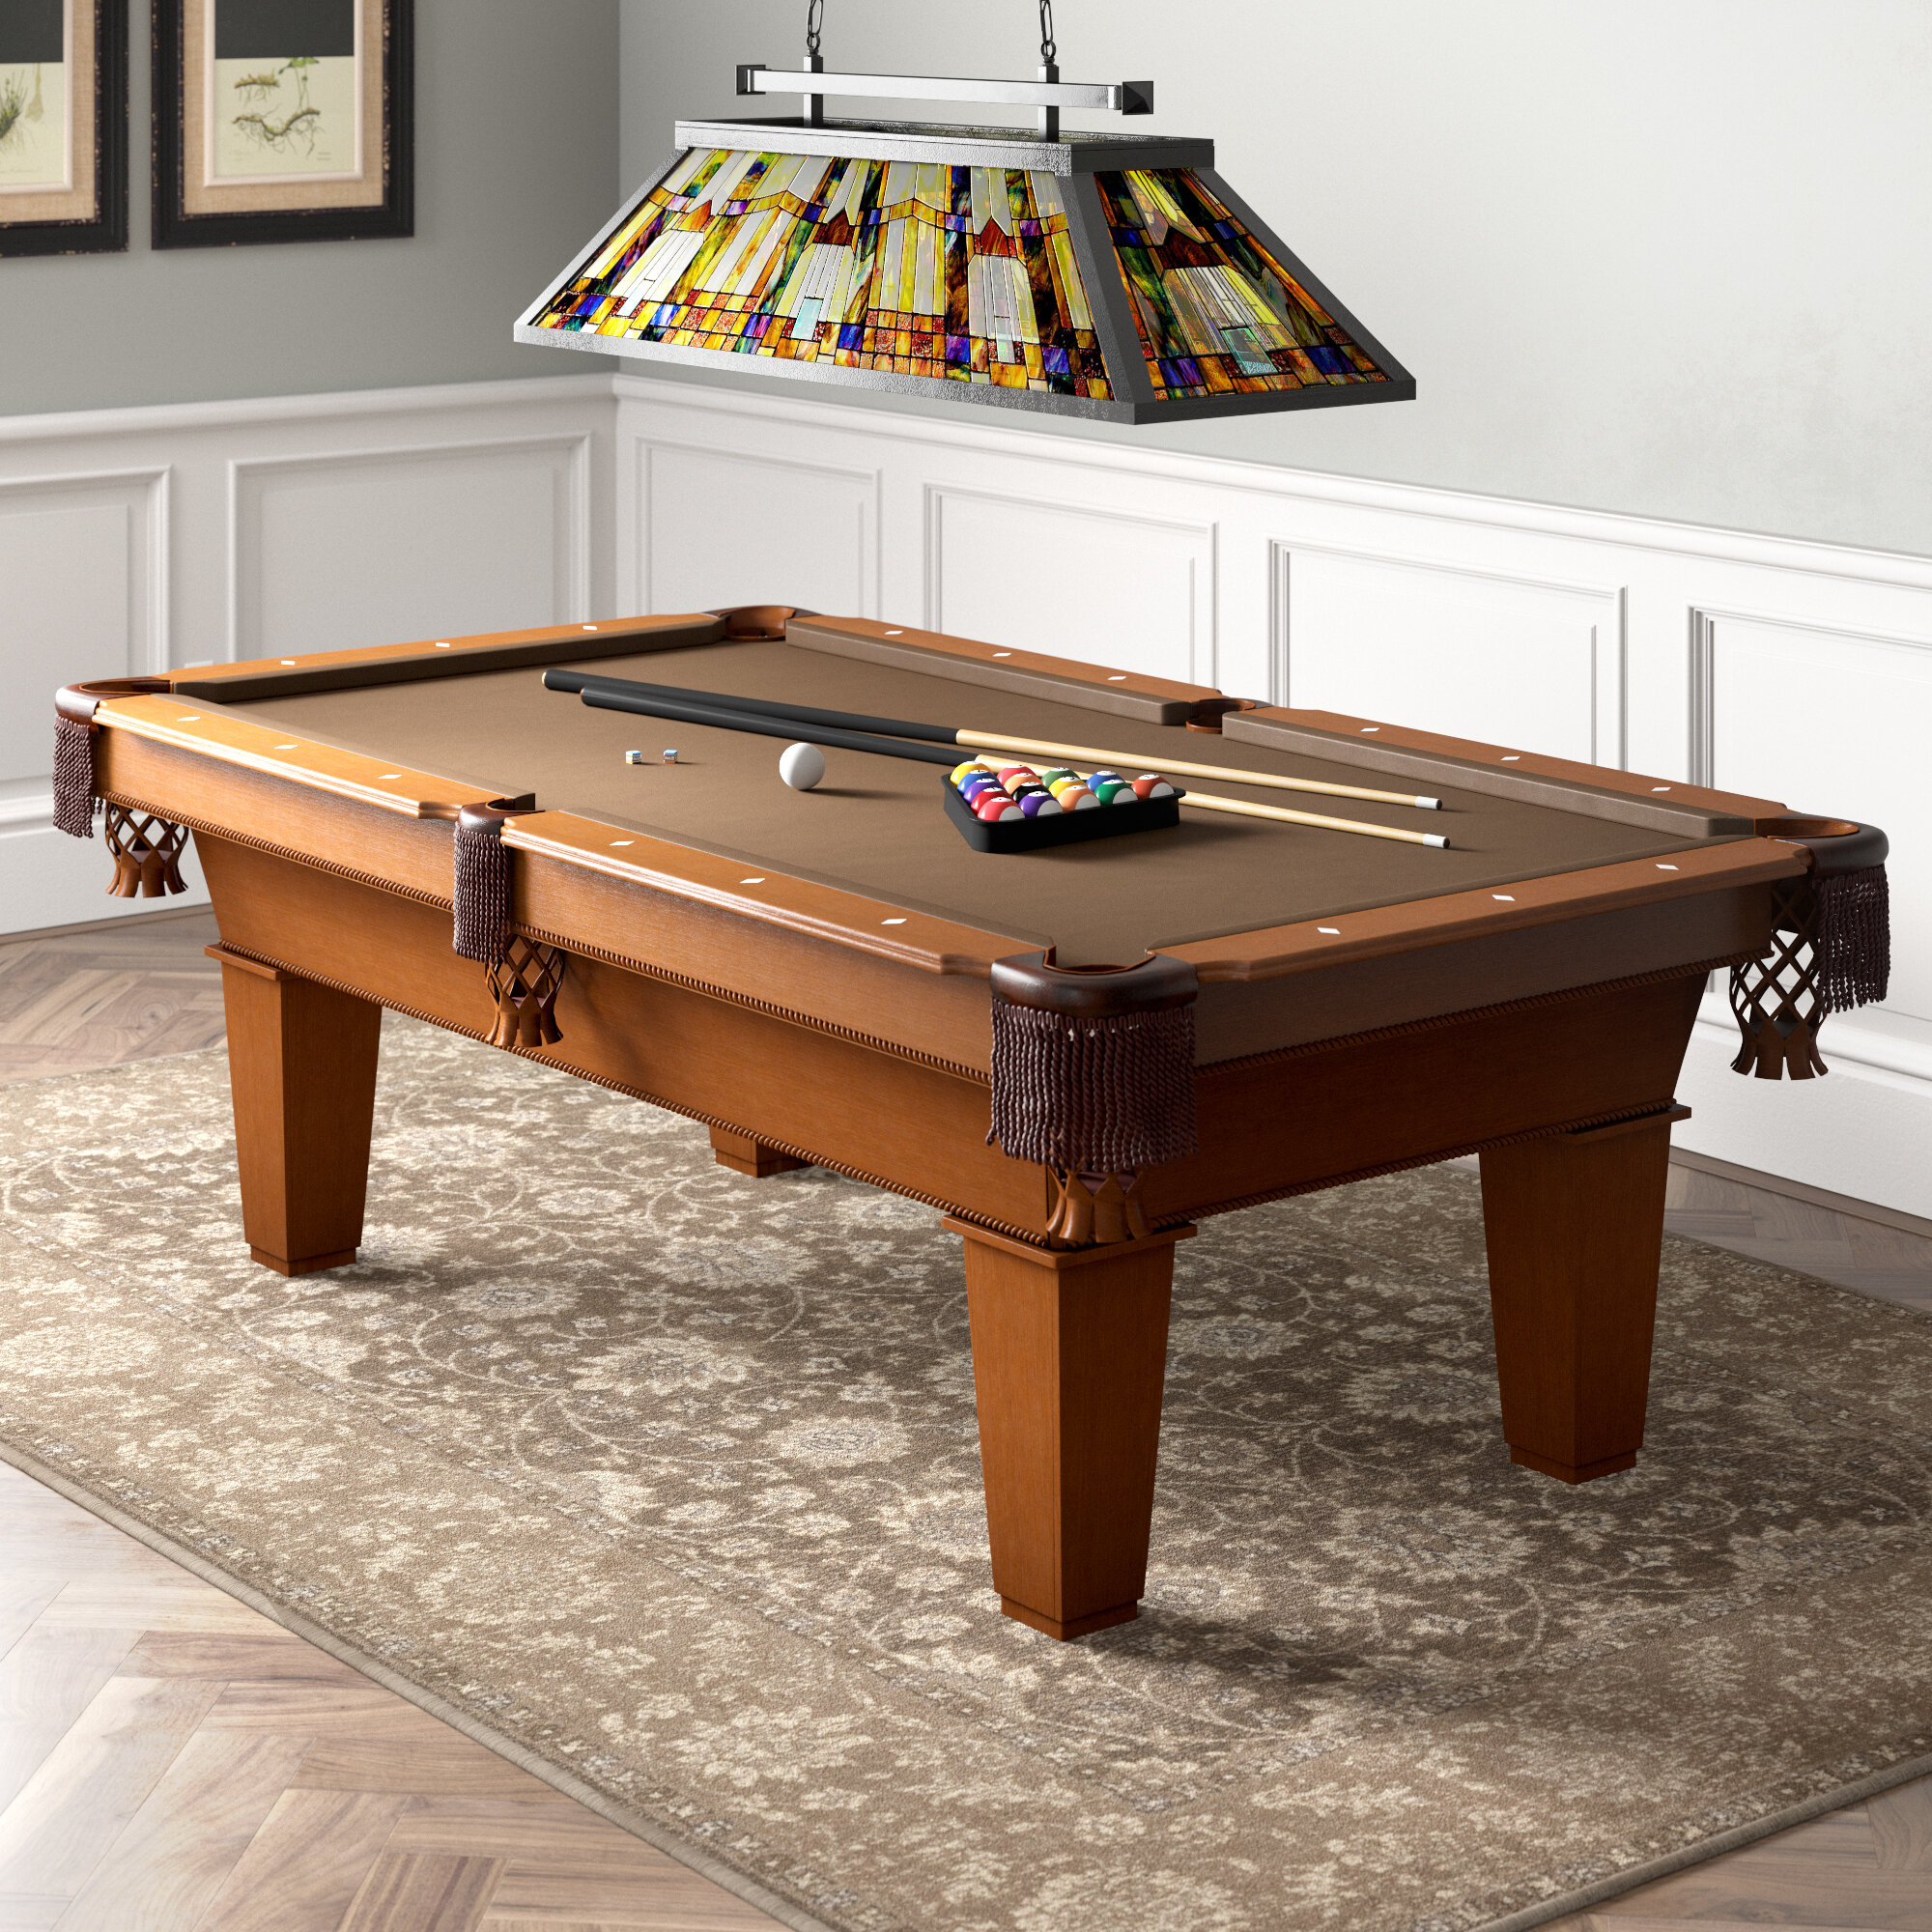 Picture of: Gld Products Fat Cat Frisco 7 5 Pool Table With Accessories Reviews